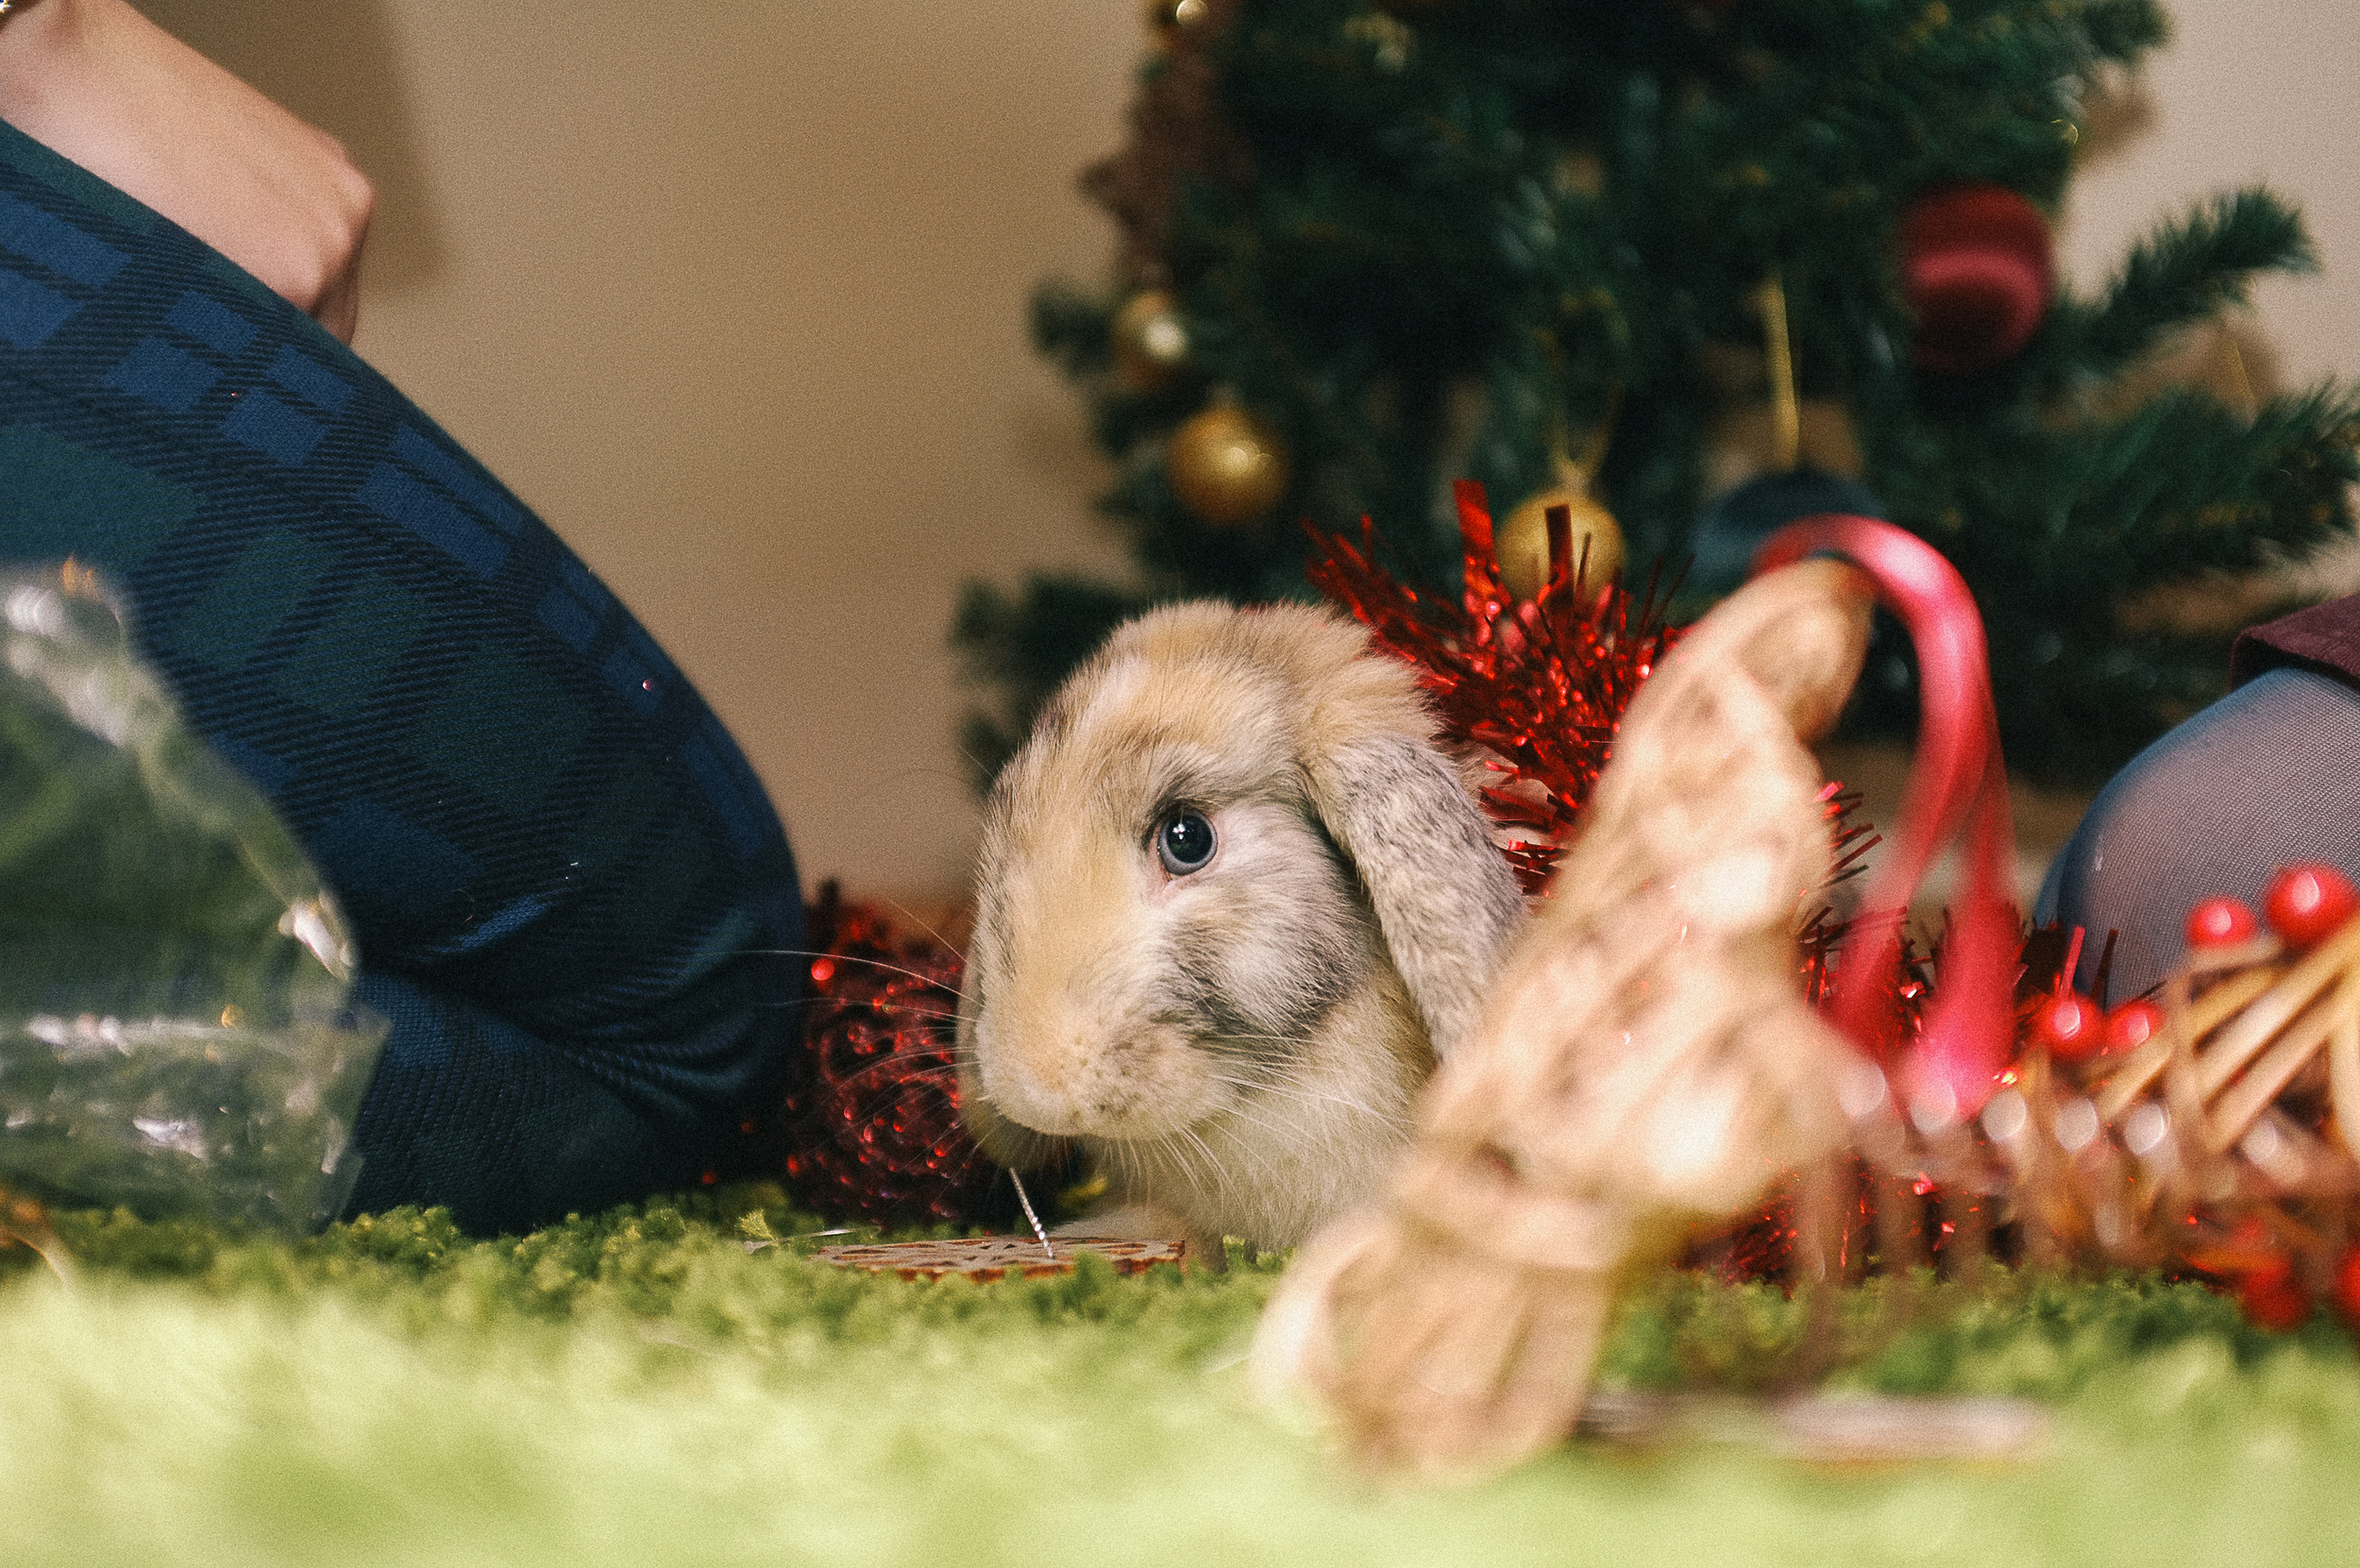 Christmas rabbit, Fuji X100 flash bounced.